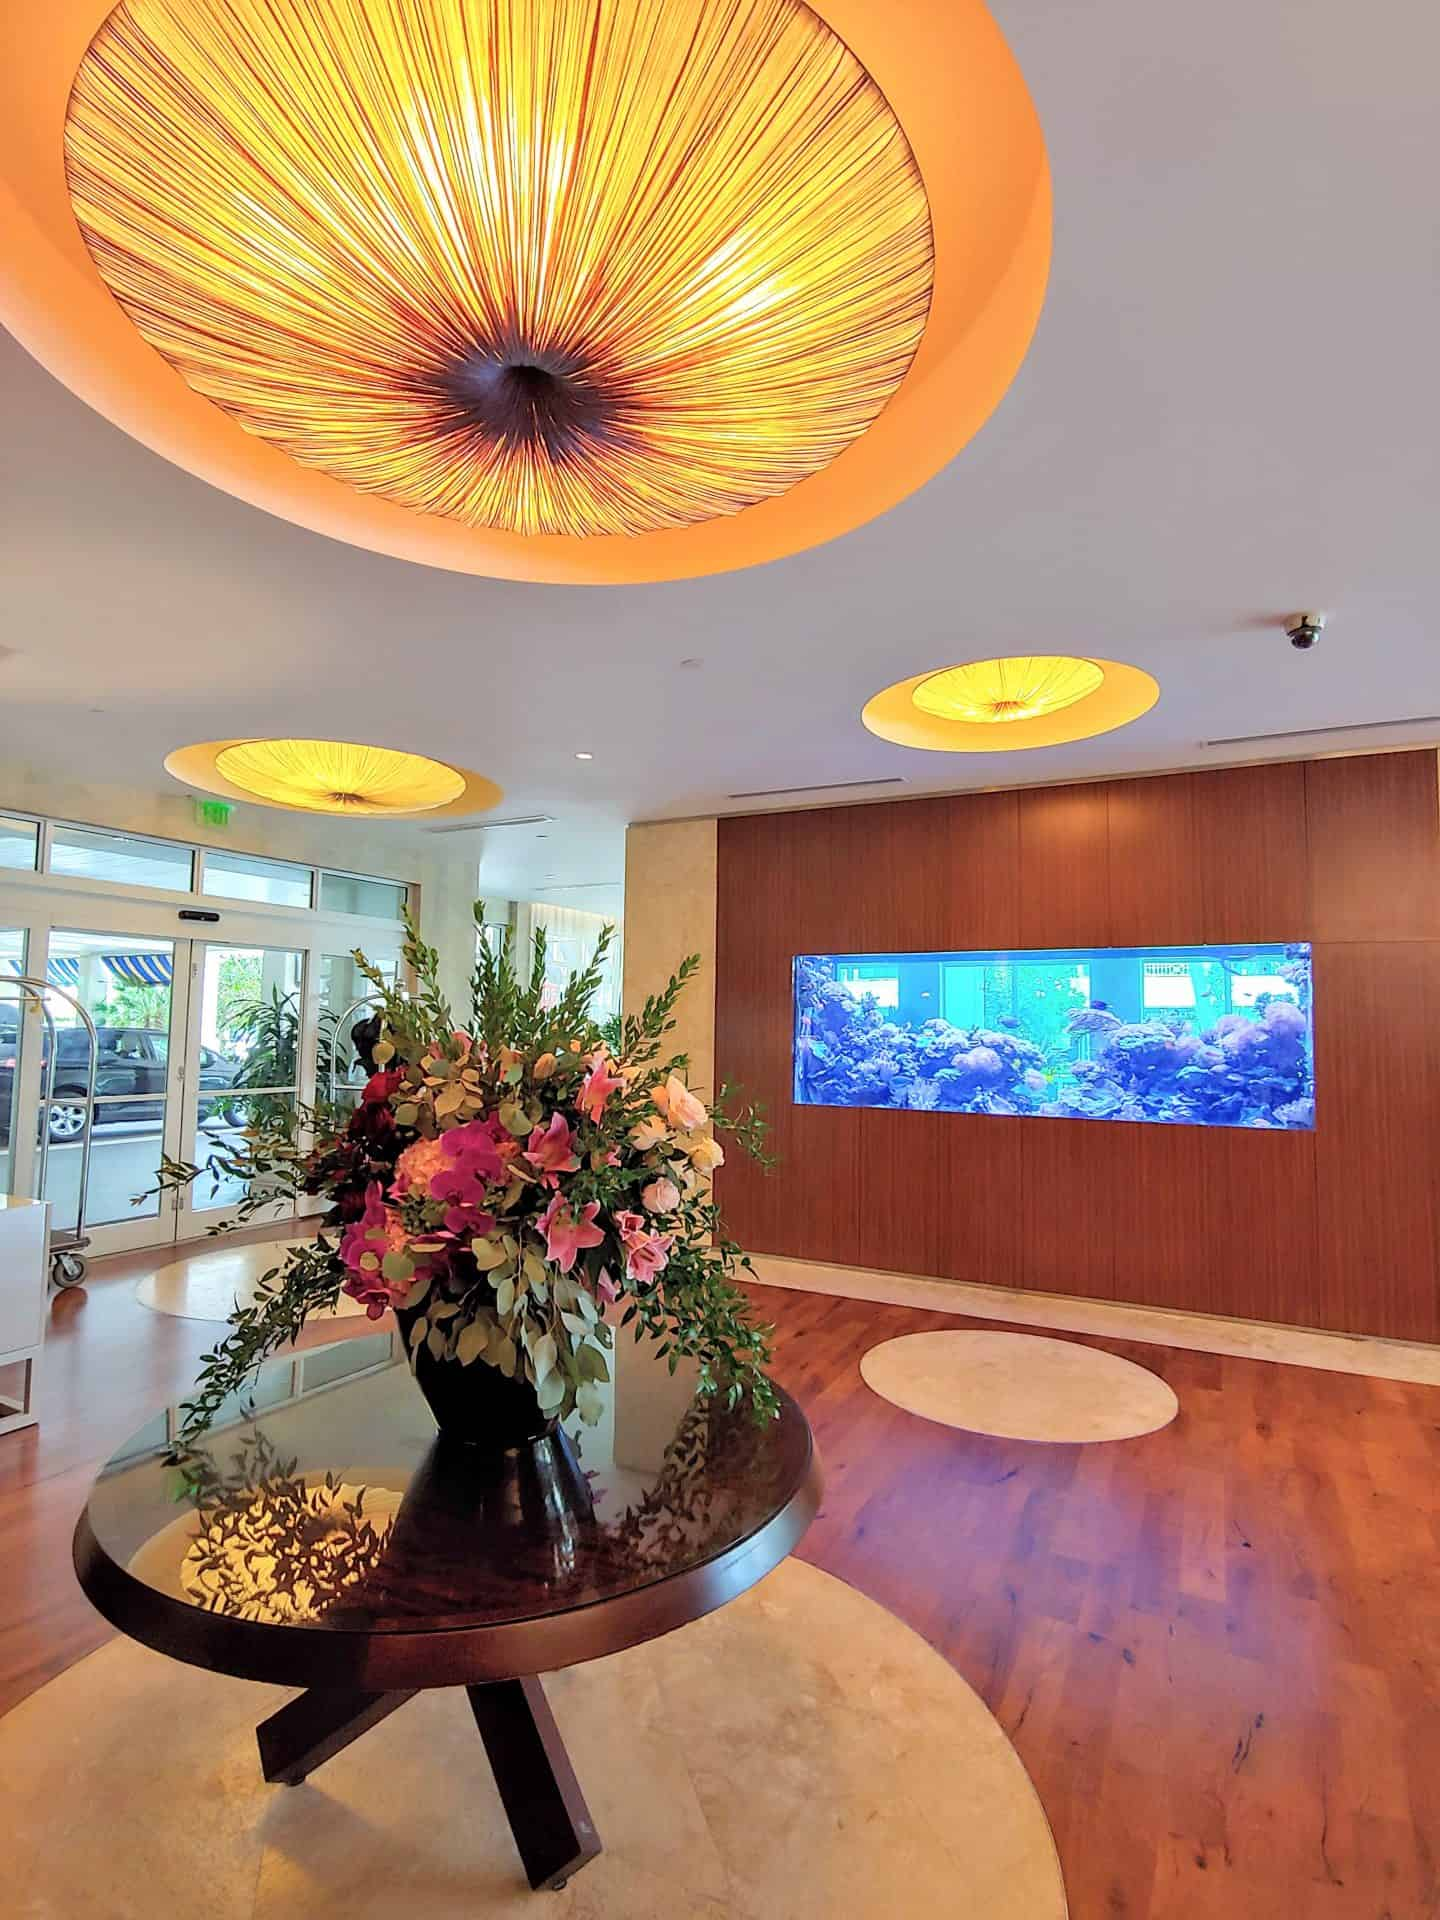 Lobby entrance with fish tank